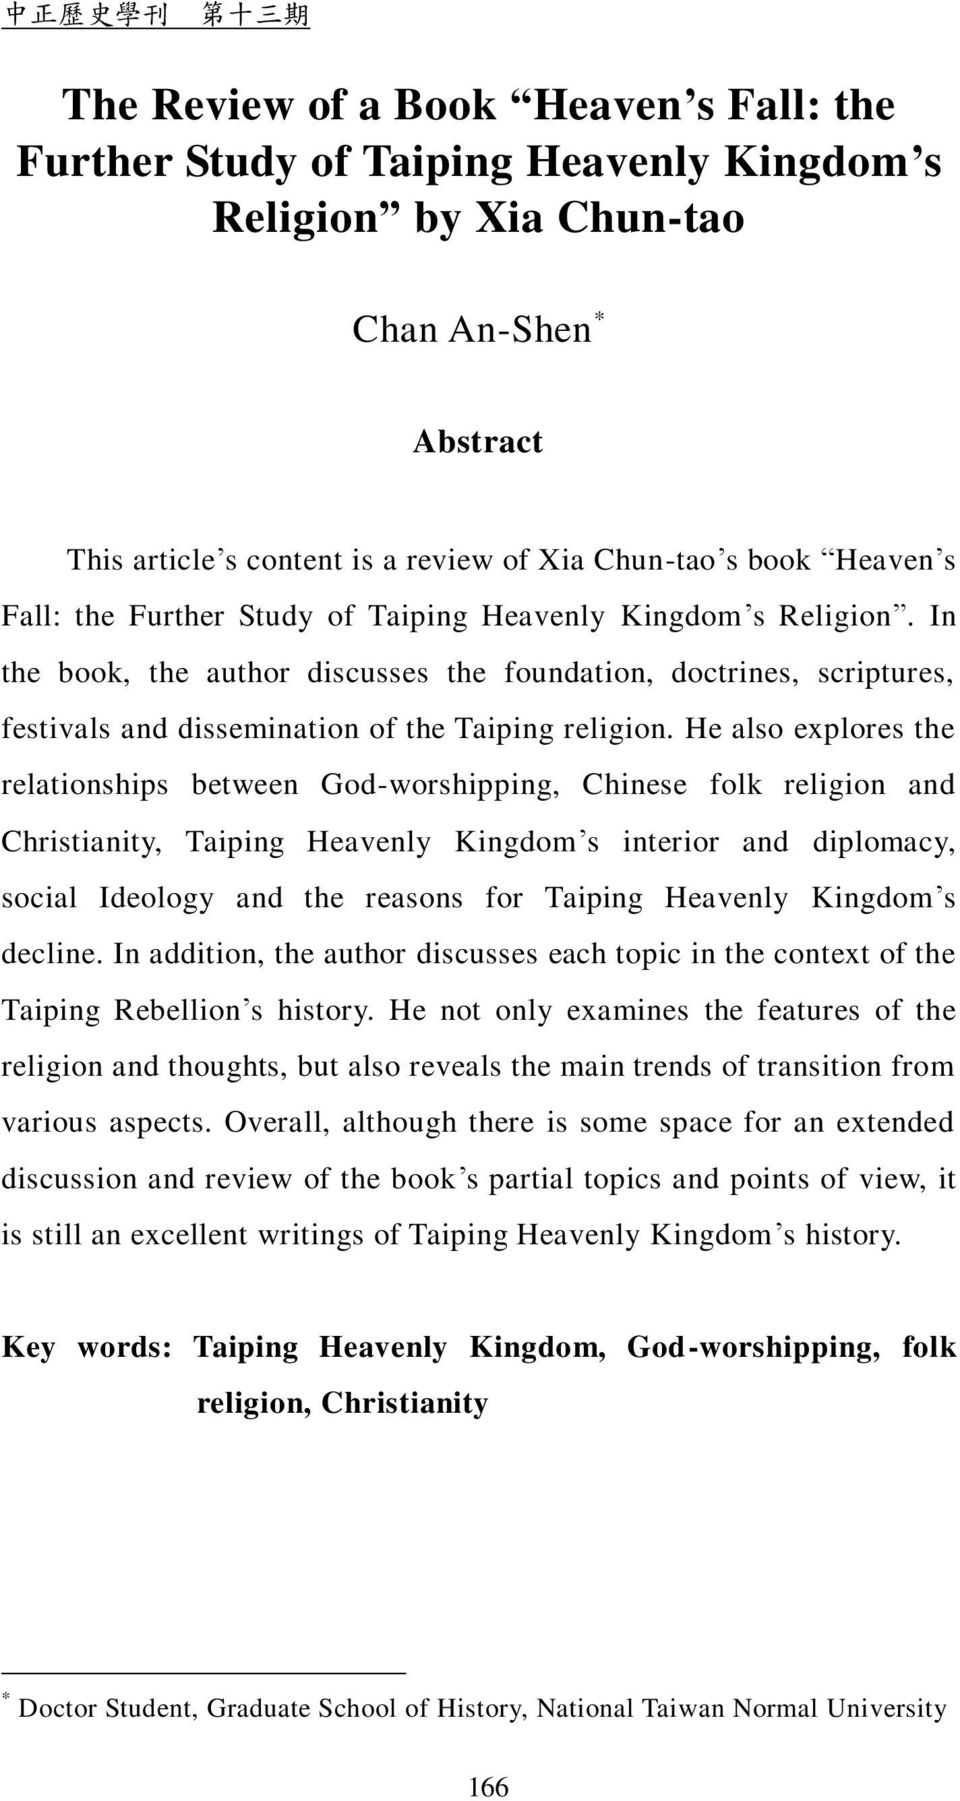 In the book, the author discusses the foundation, doctrines, scriptures, festivals and dissemination of the Taiping religion.